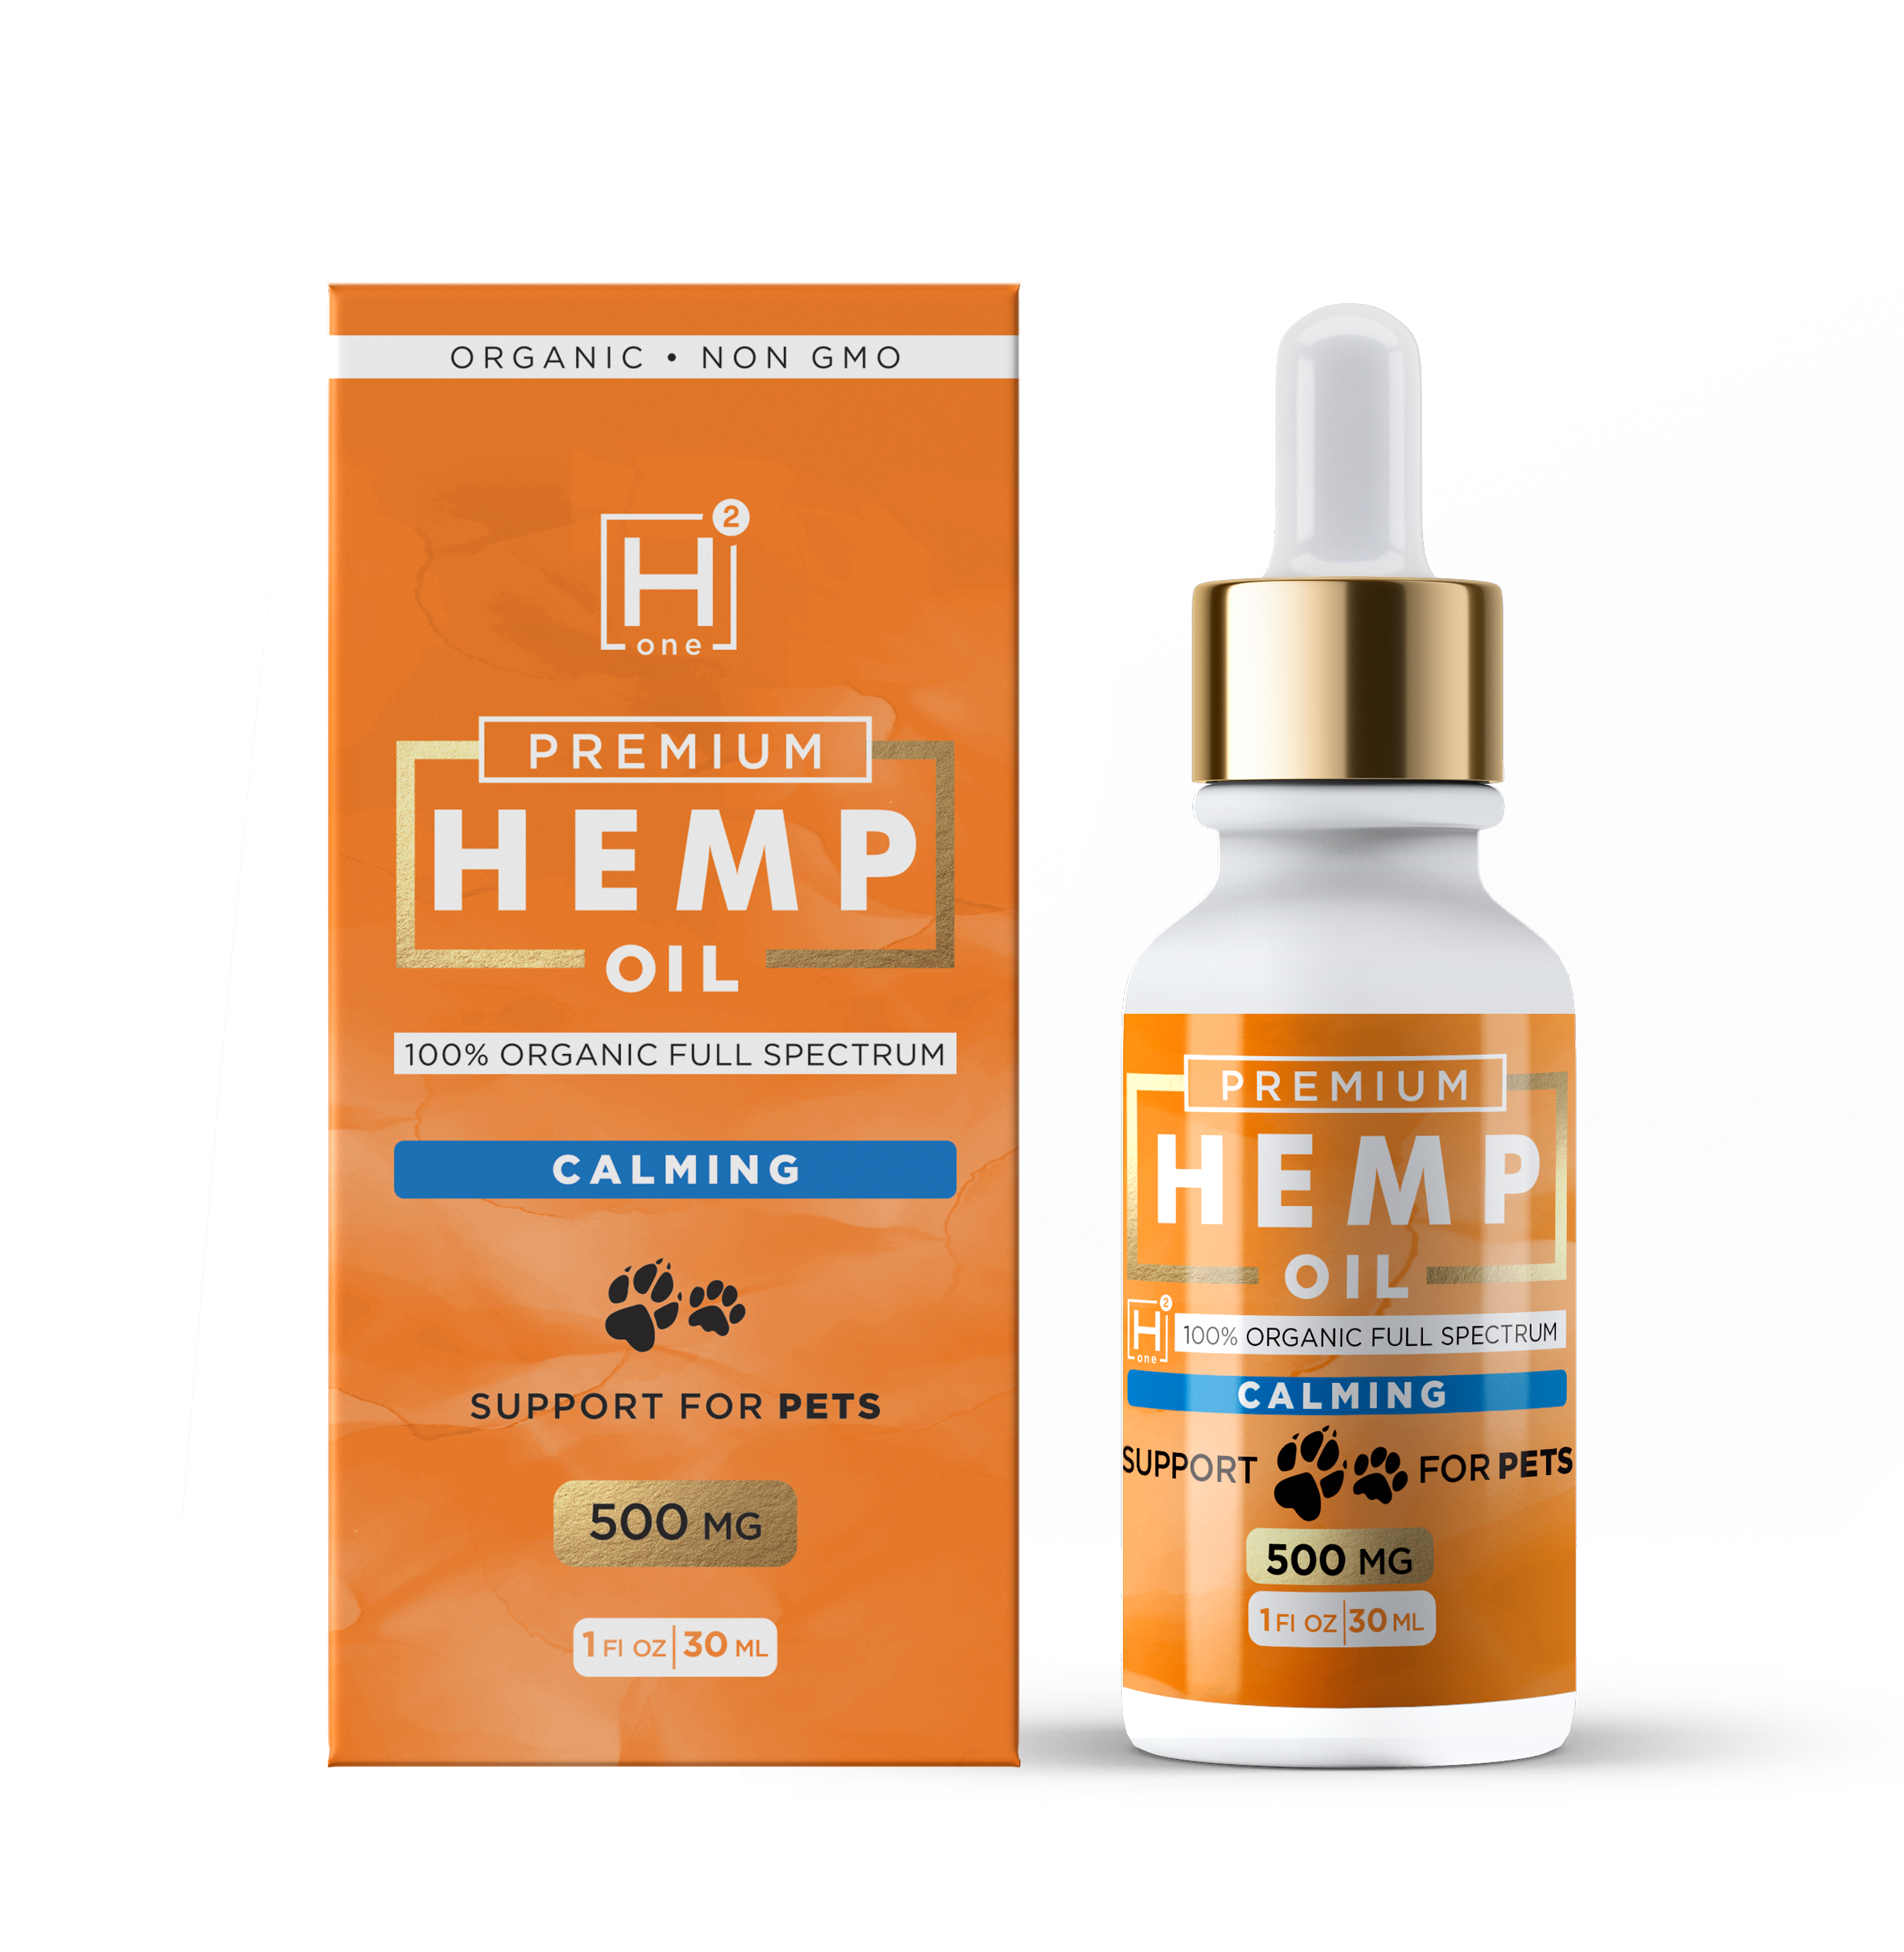 Calming Pet Oil (500 MG) - Hemp Health One